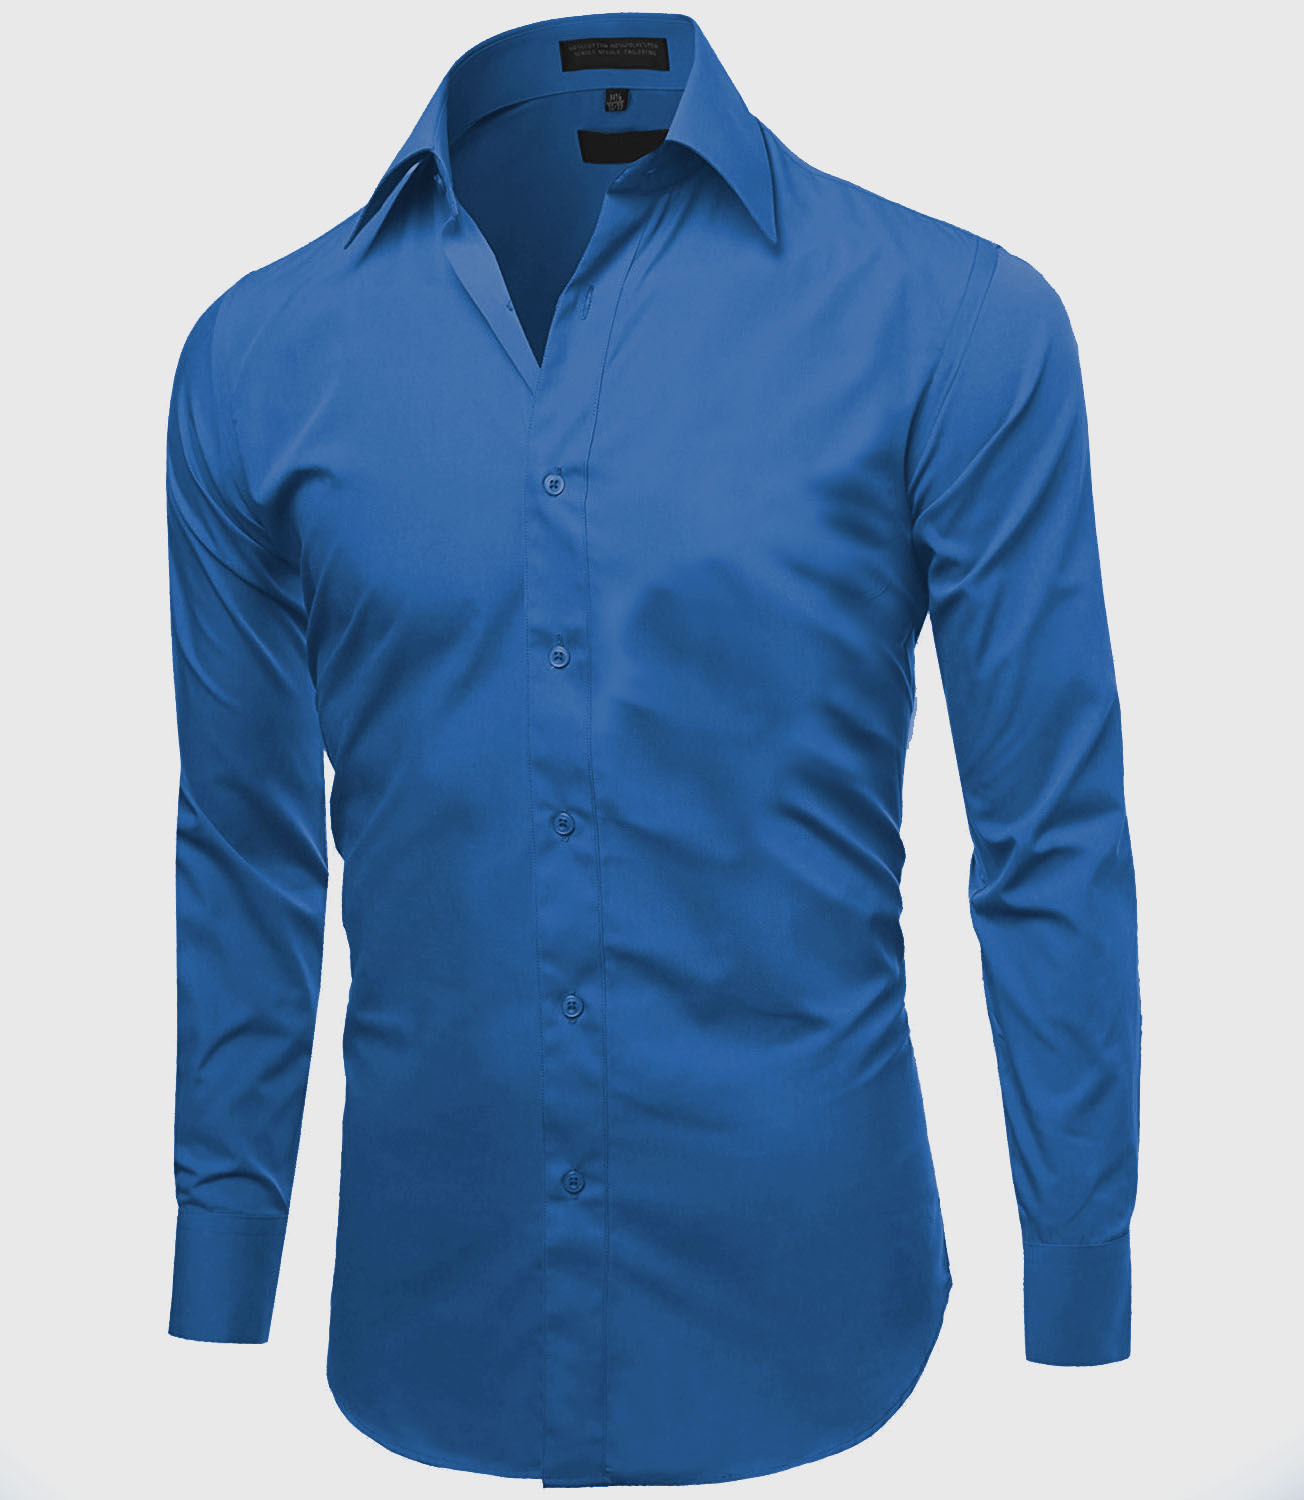 Omega-Italy-Men-039-s-Premium-Slim-Fit-Button-Up-Long-Sleeve-Solid-Color-Dress-Shirt thumbnail 58